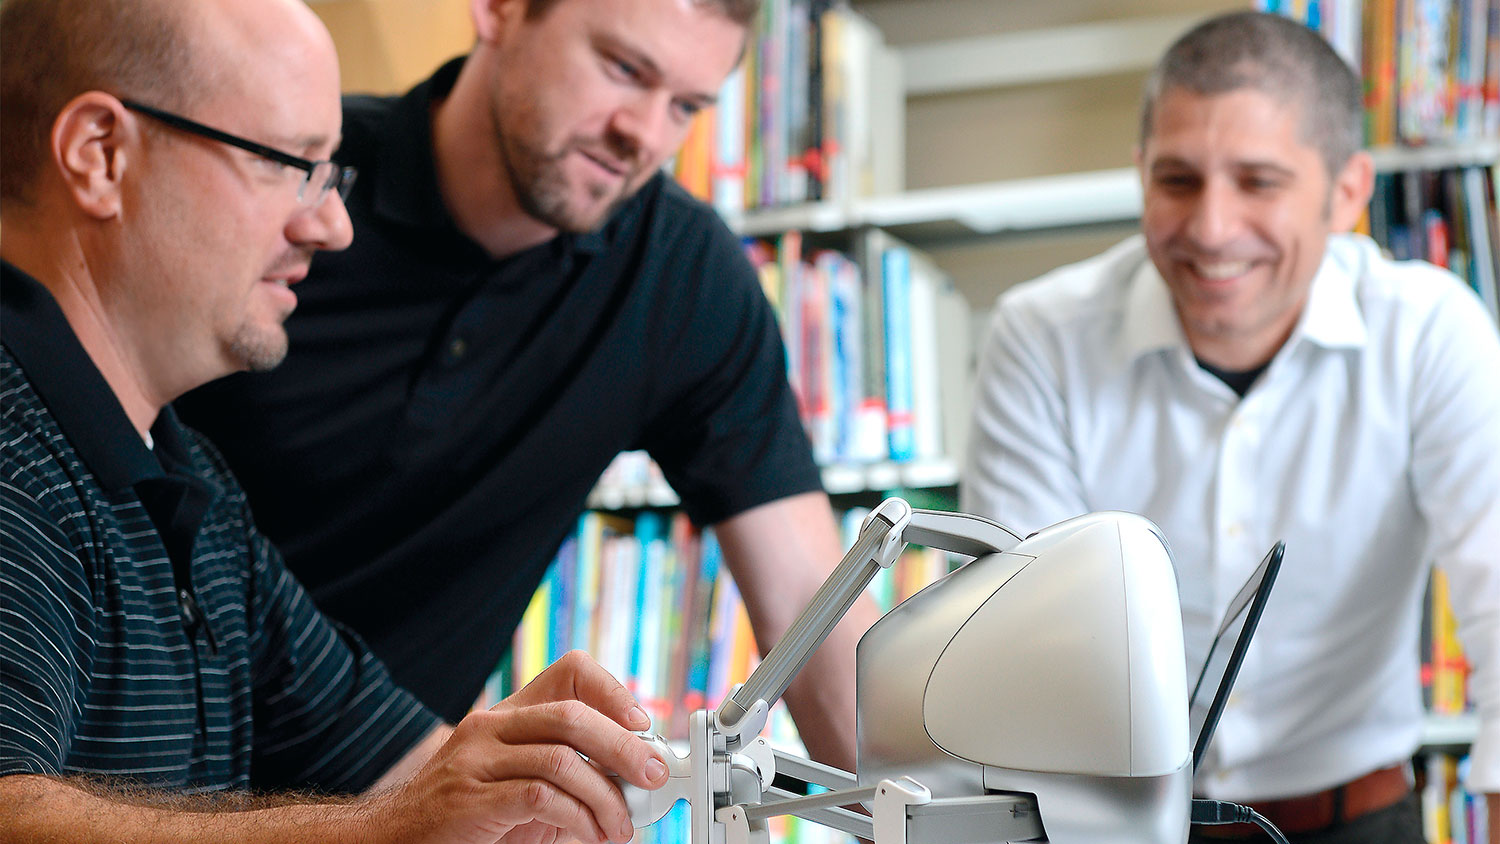 Researchers working with robot